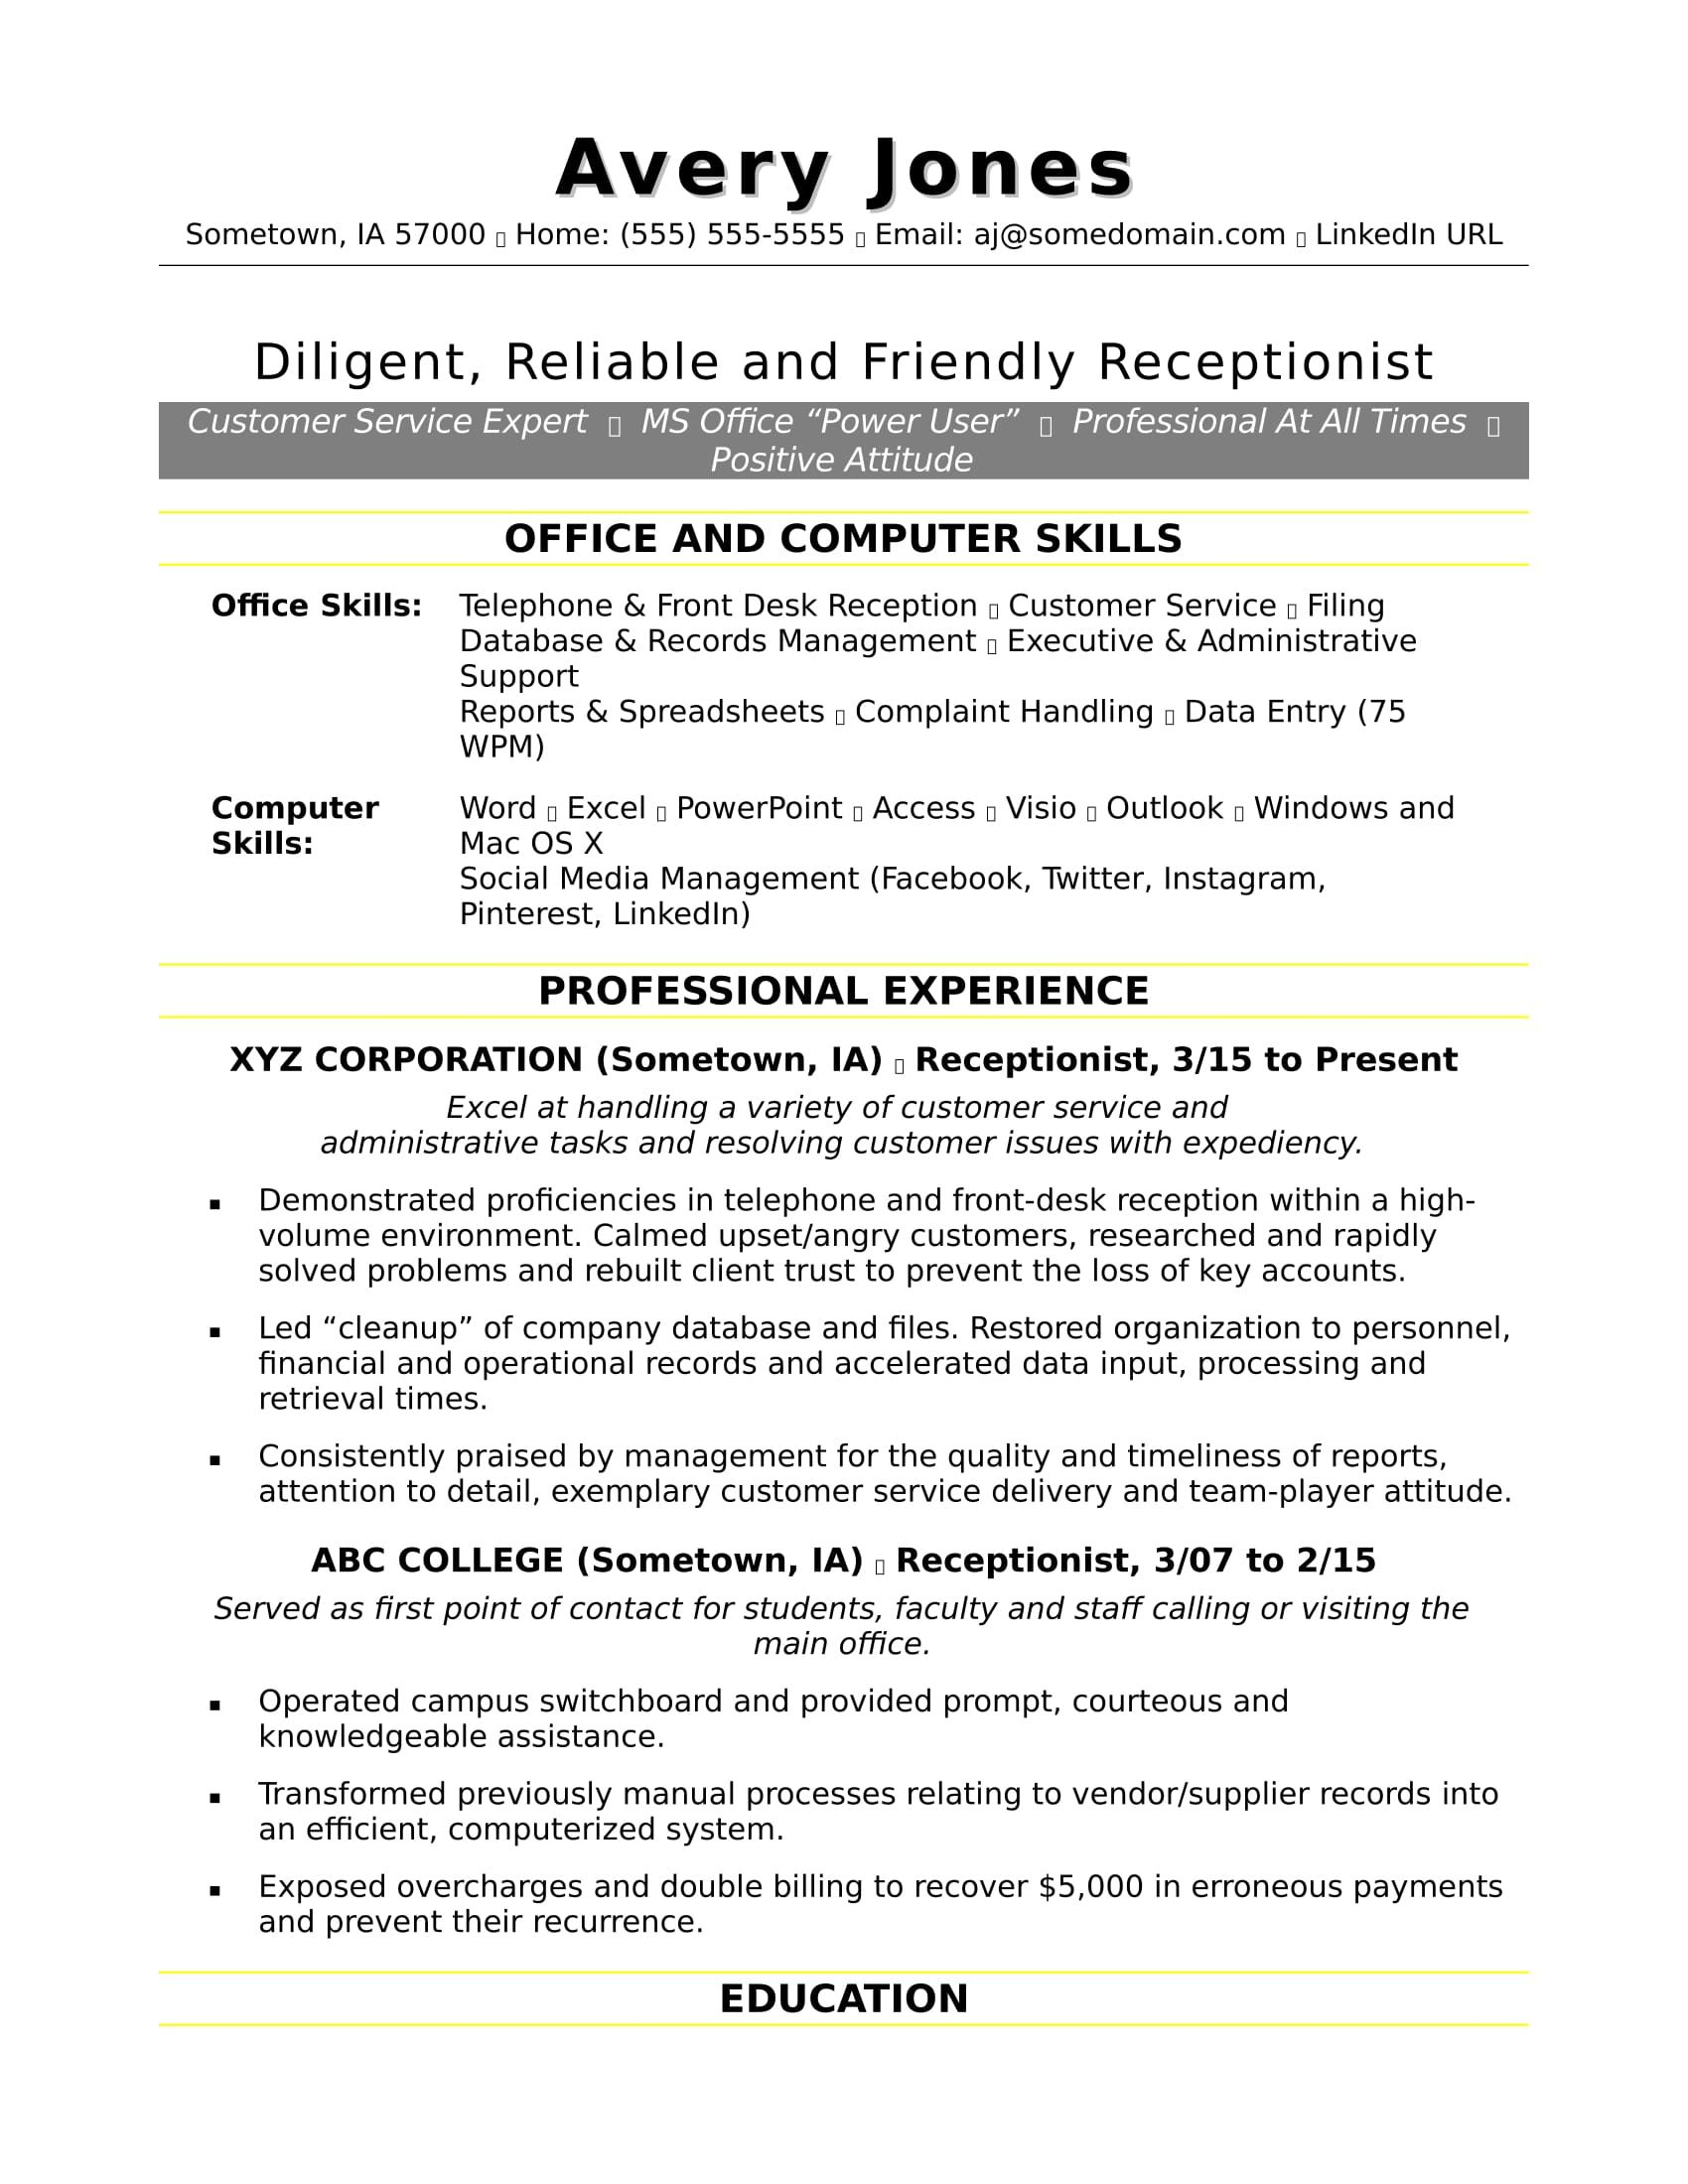 Resume Samples Receptionist Resume Examples Receptionist  Receptionist Resume Examples And .